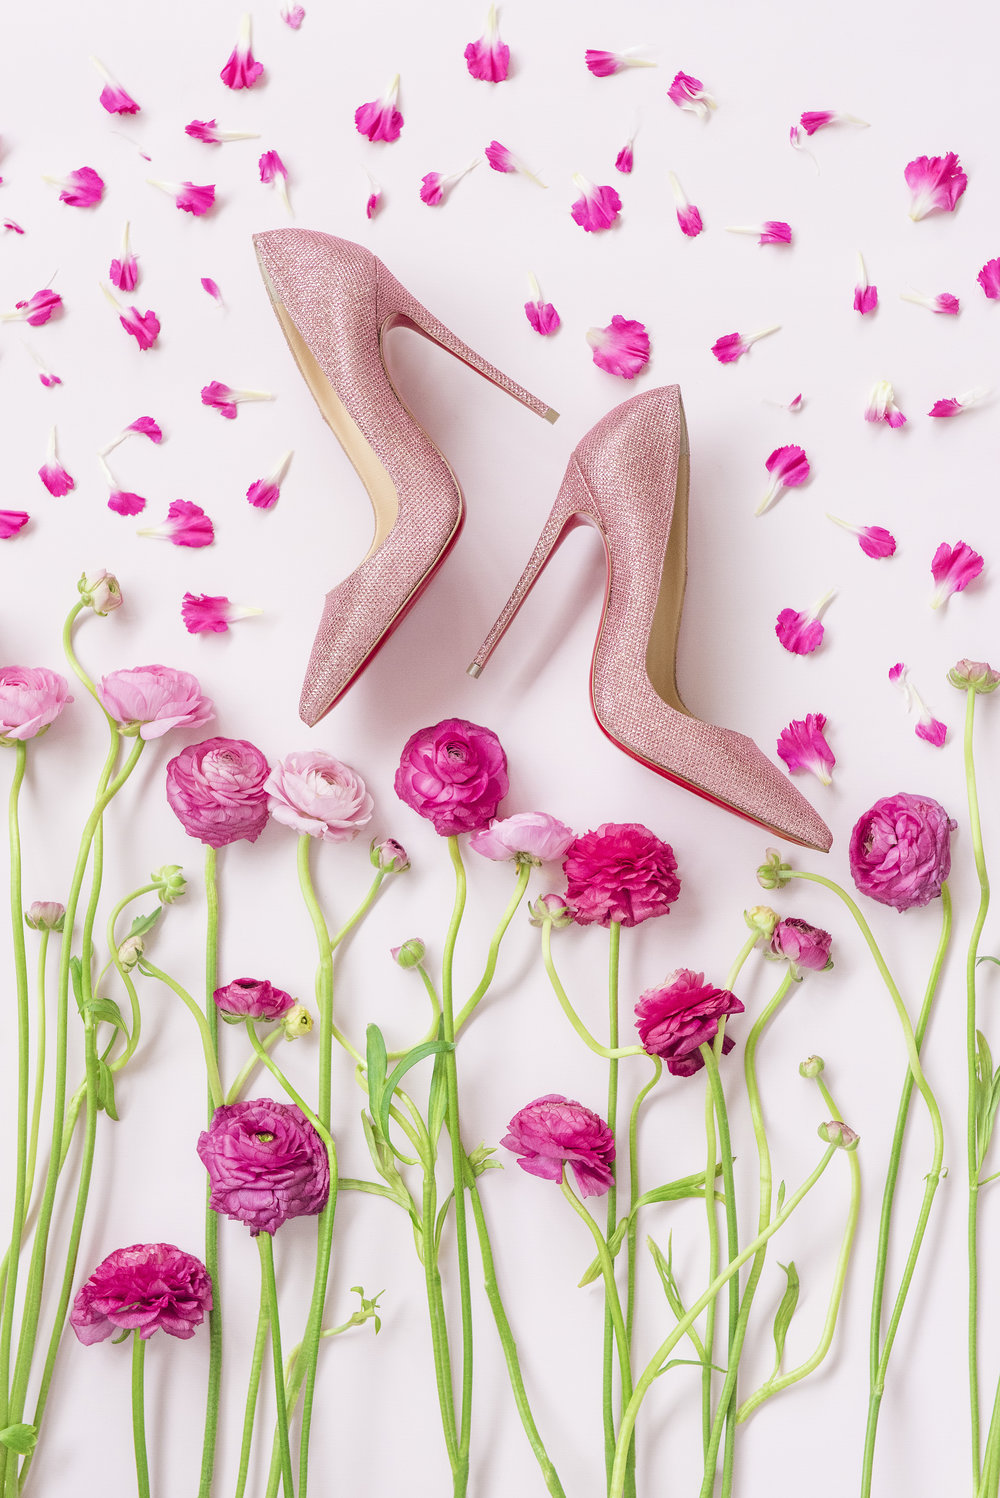 Wedding Shoes Christian Louboutins - Dior Darling (Wedluxe)